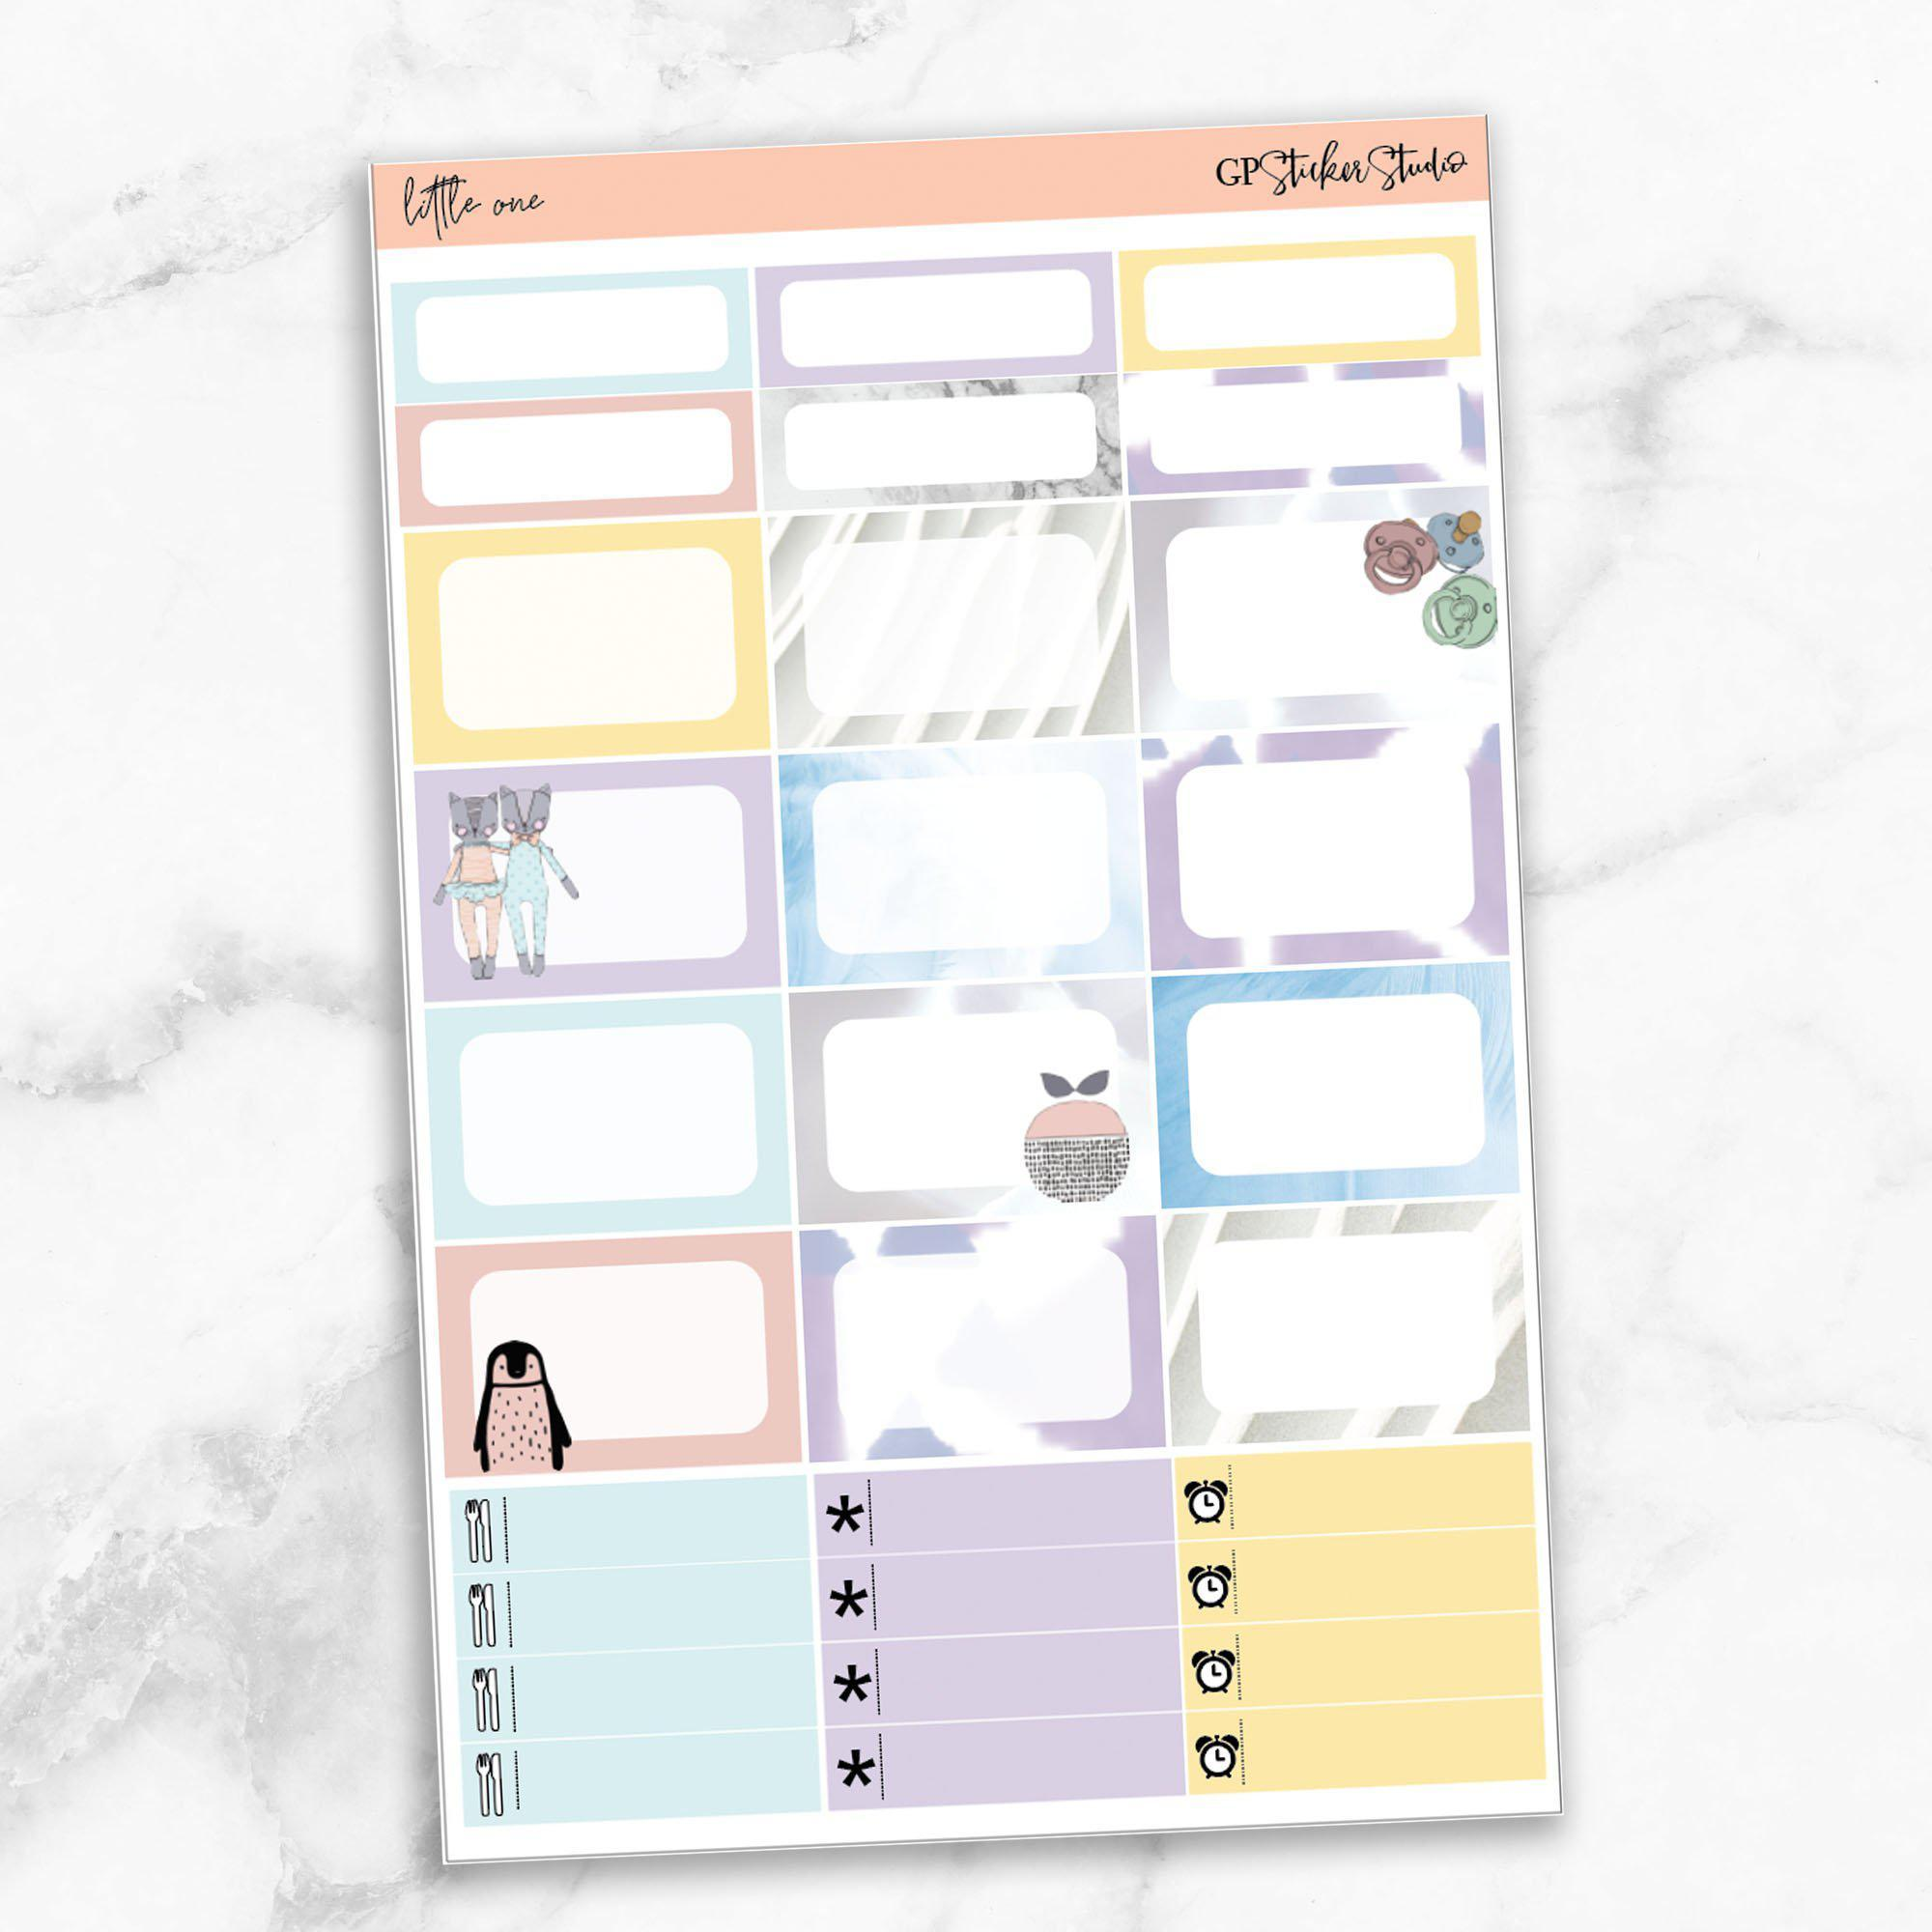 LITTLE ONE Half Boxes Planner Stickers-The GP Studio